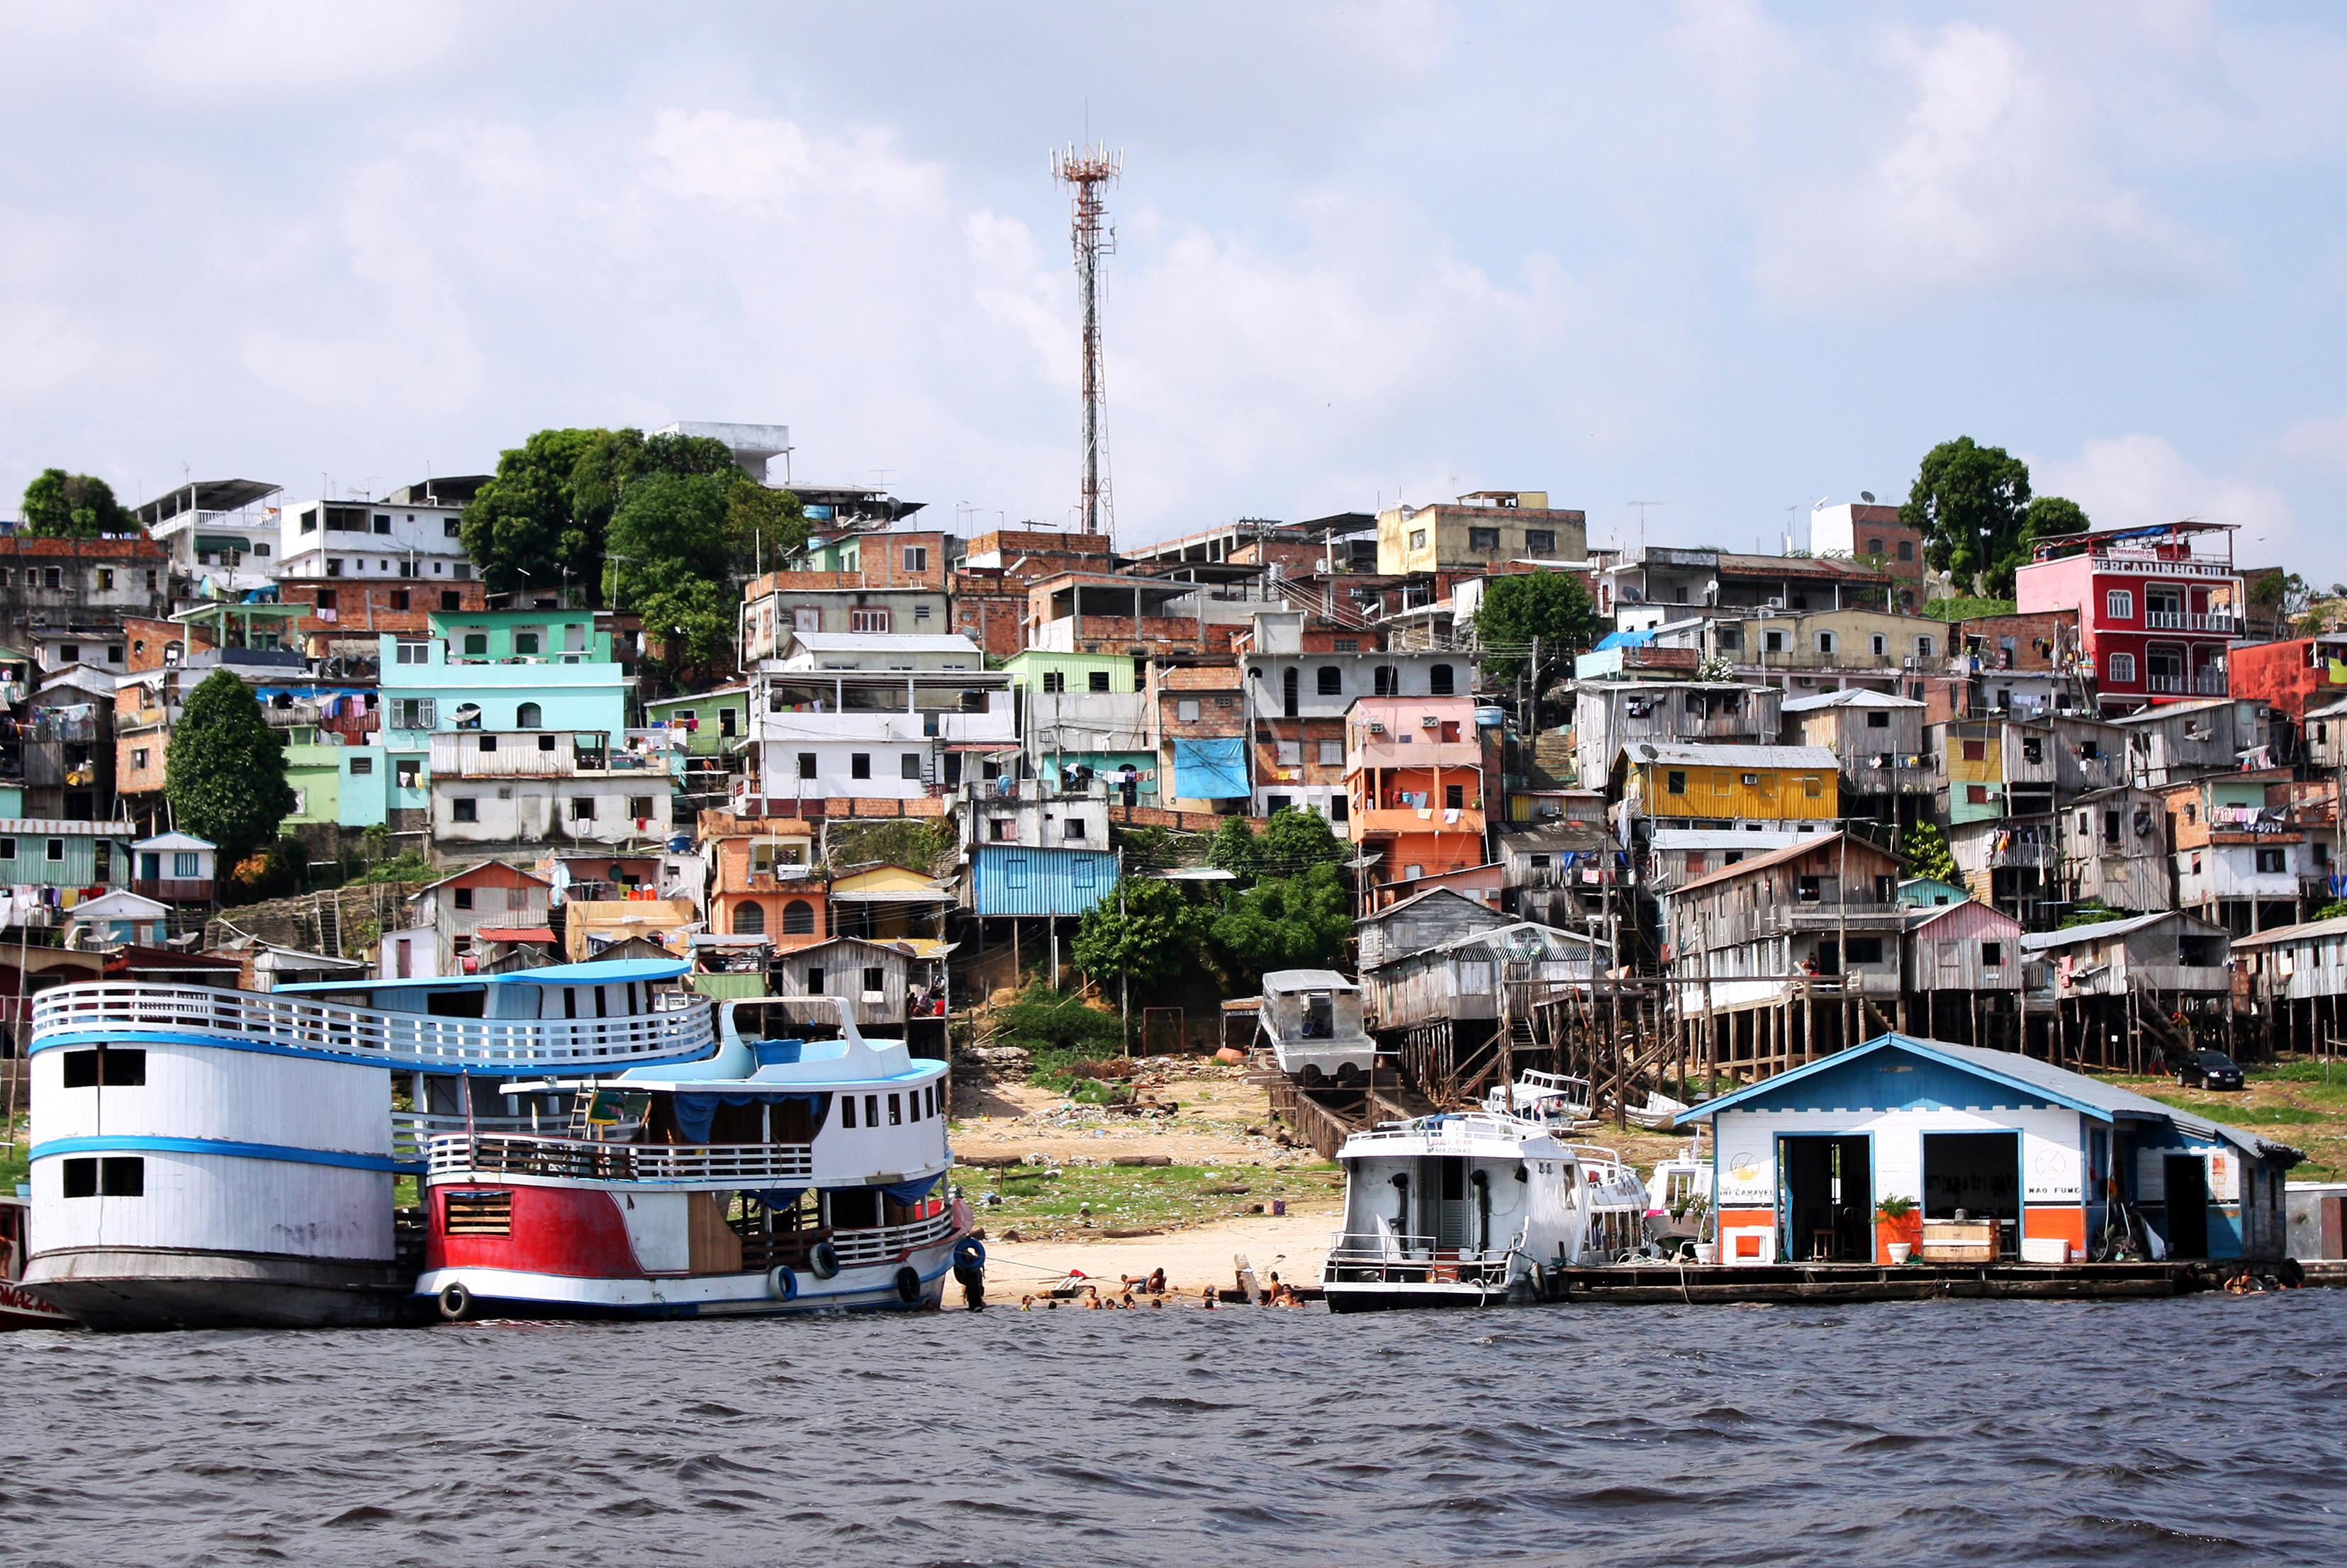 Boats in a harbor in Brazil with colorful houses in the background on hills